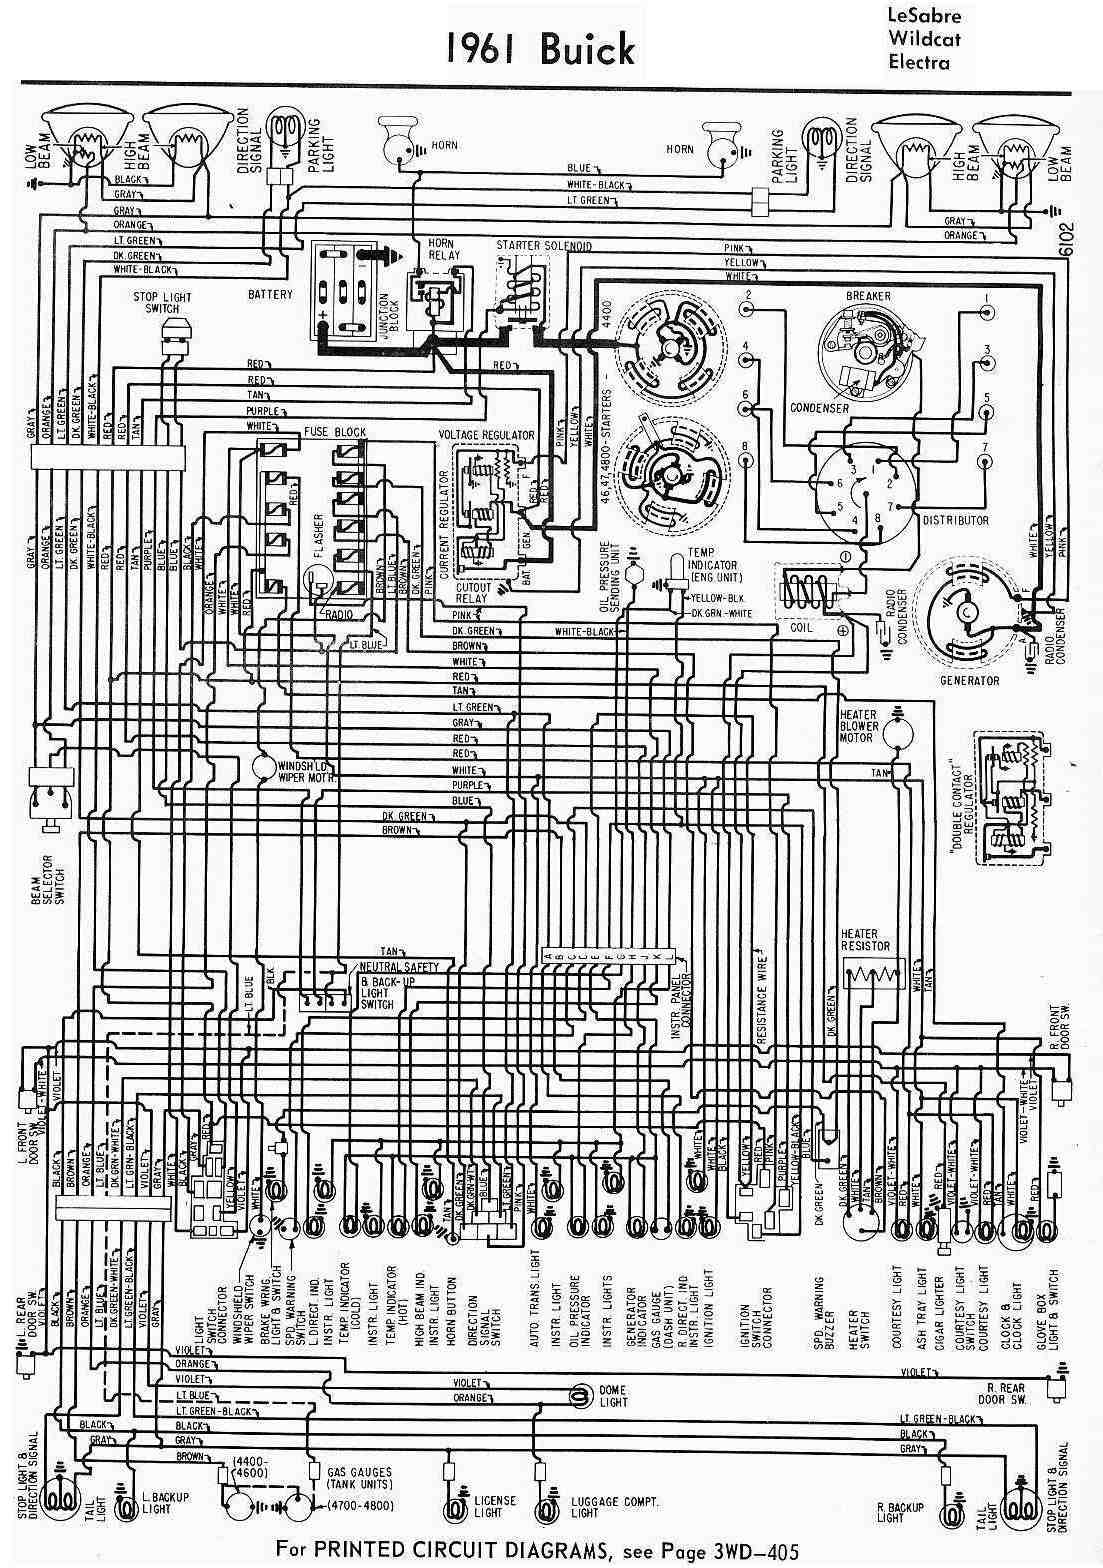 hight resolution of wiring diagram for 1997 buick lesabre wiring diagram expert wiring diagram 2000 buick lesabre